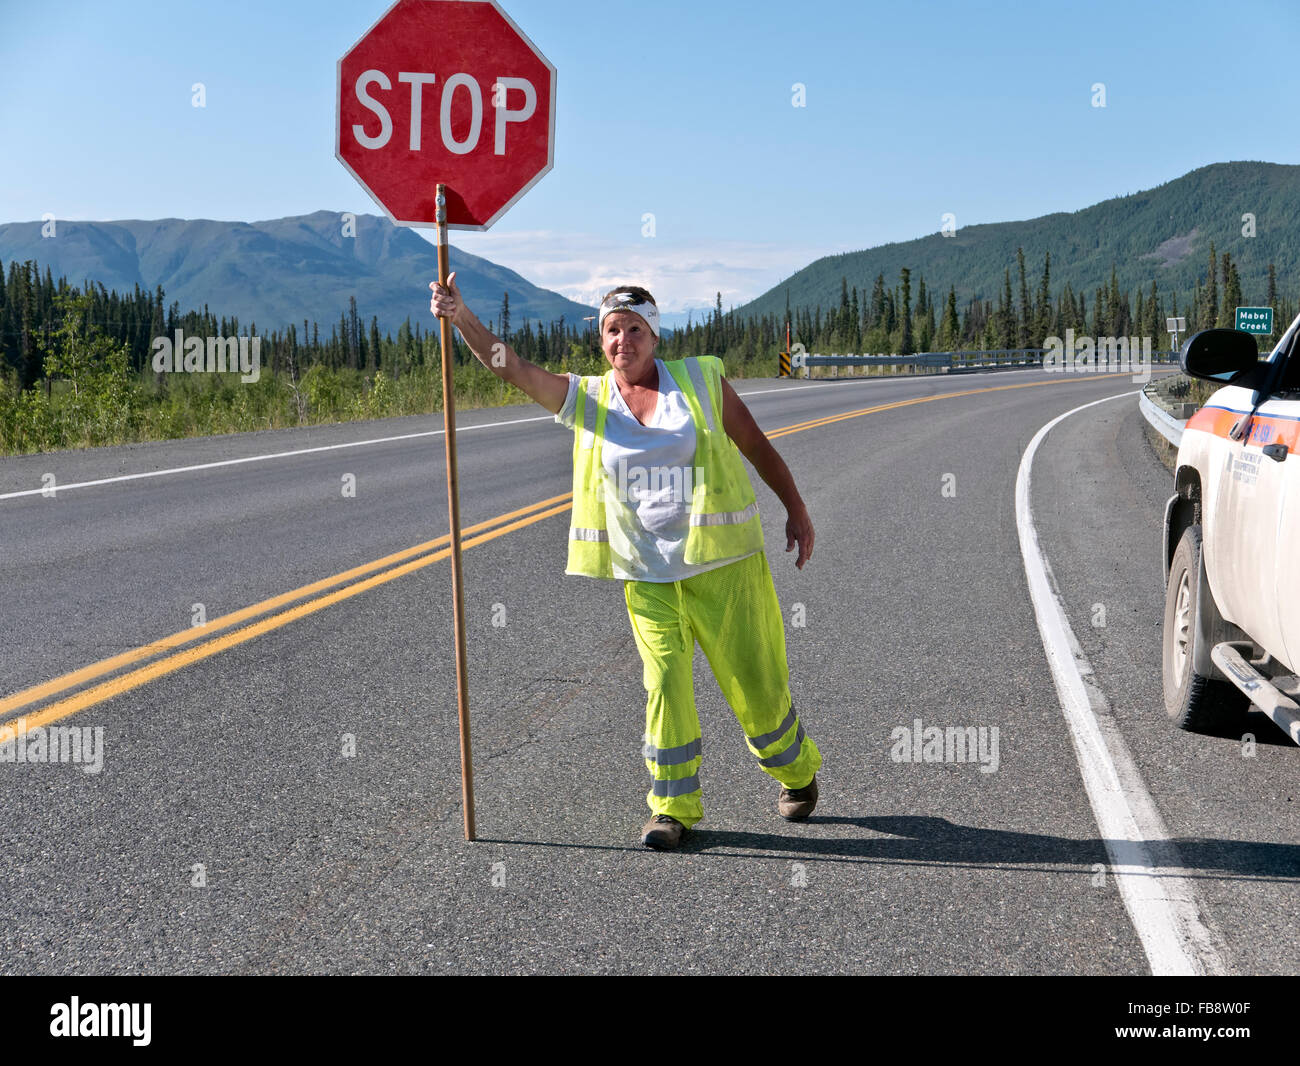 Traffic control, female wearing safety colors, displaying 'stop' sign, Alcan Highway. - Stock Image